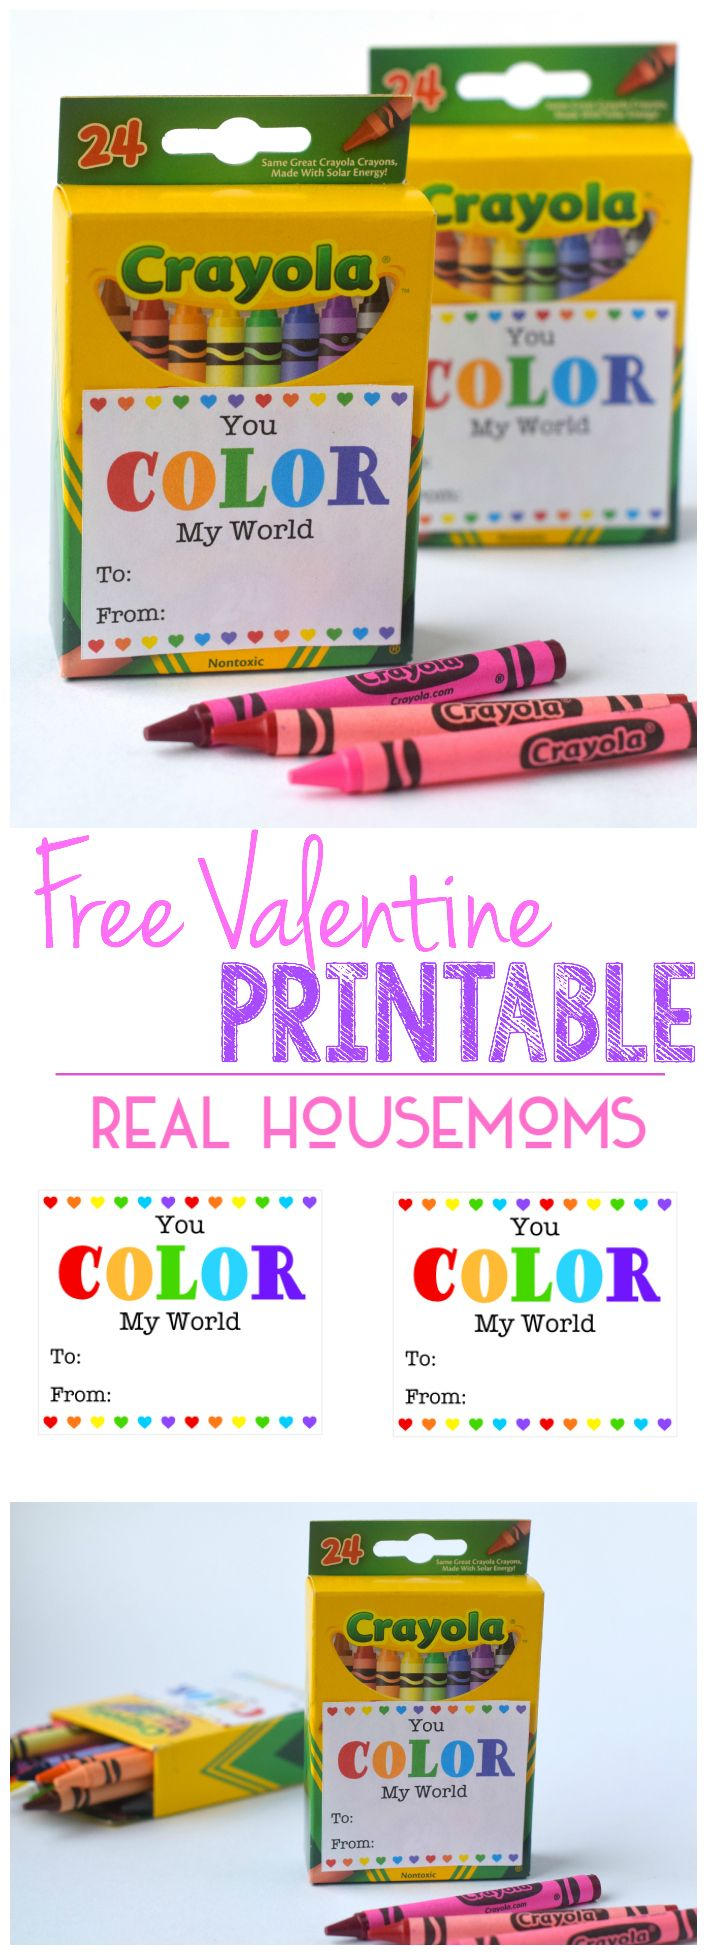 This super cute FREE PRINTABLE VALENTINE makes creating Valentine's for a class a snap! Some boxes of crayons, some scissors and you're done!